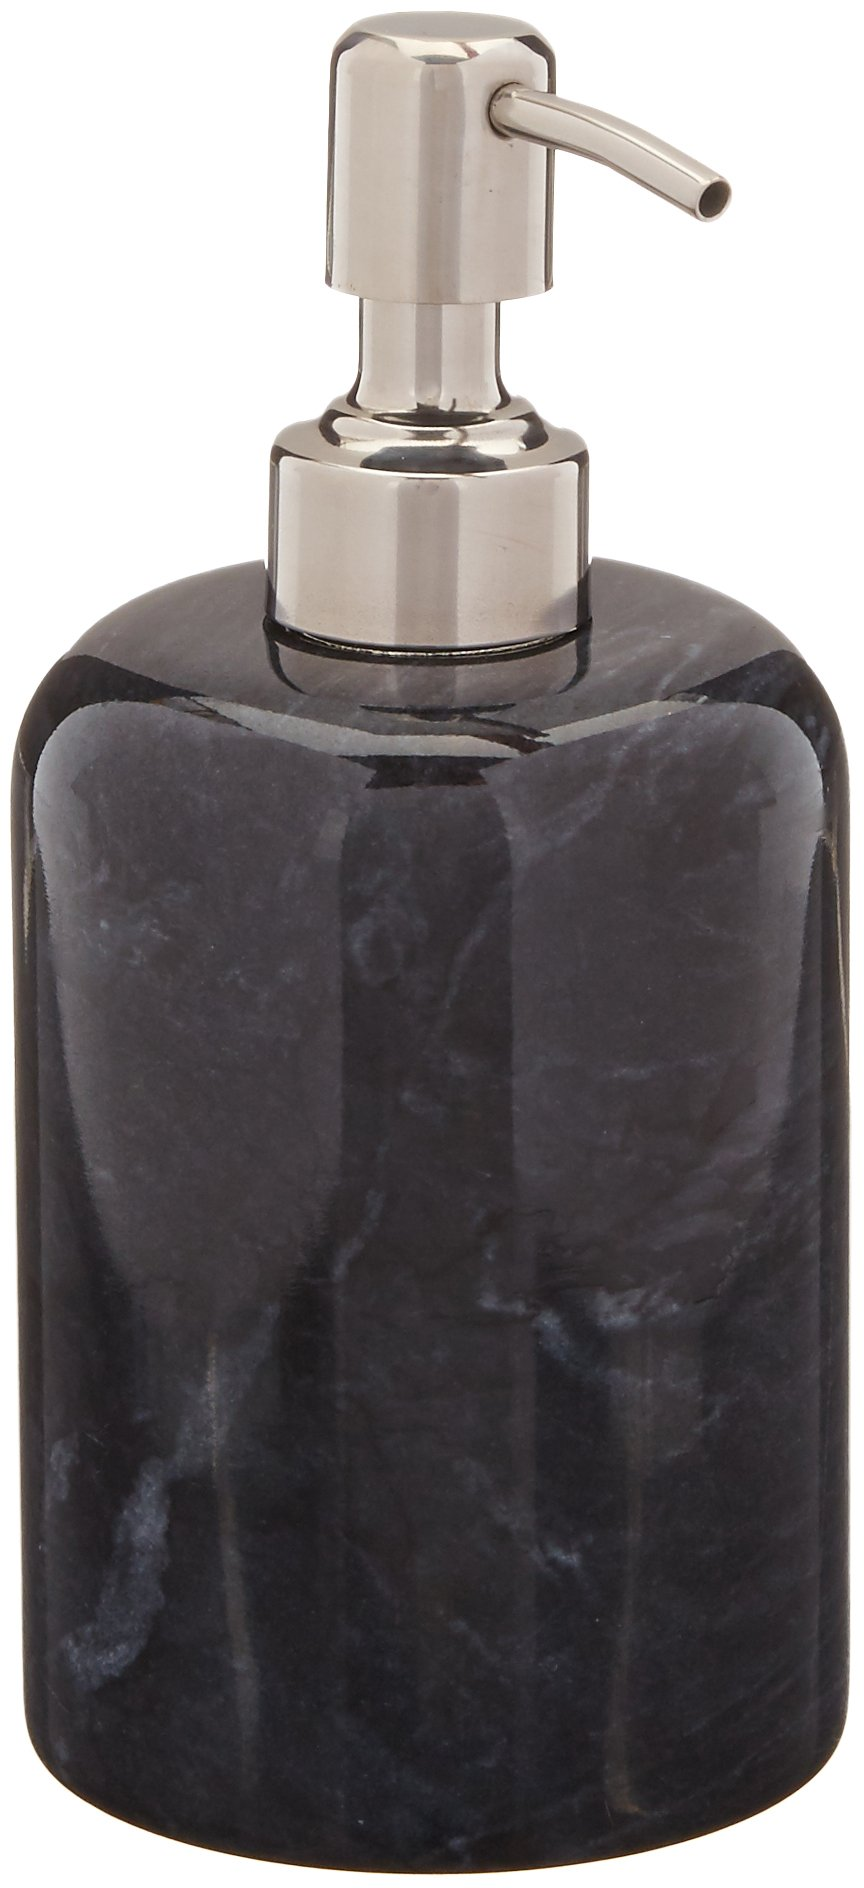 Creative Home Internal Spa Collection Black Marble Liquid Soap Dispenser by Creative Home (Image #1)